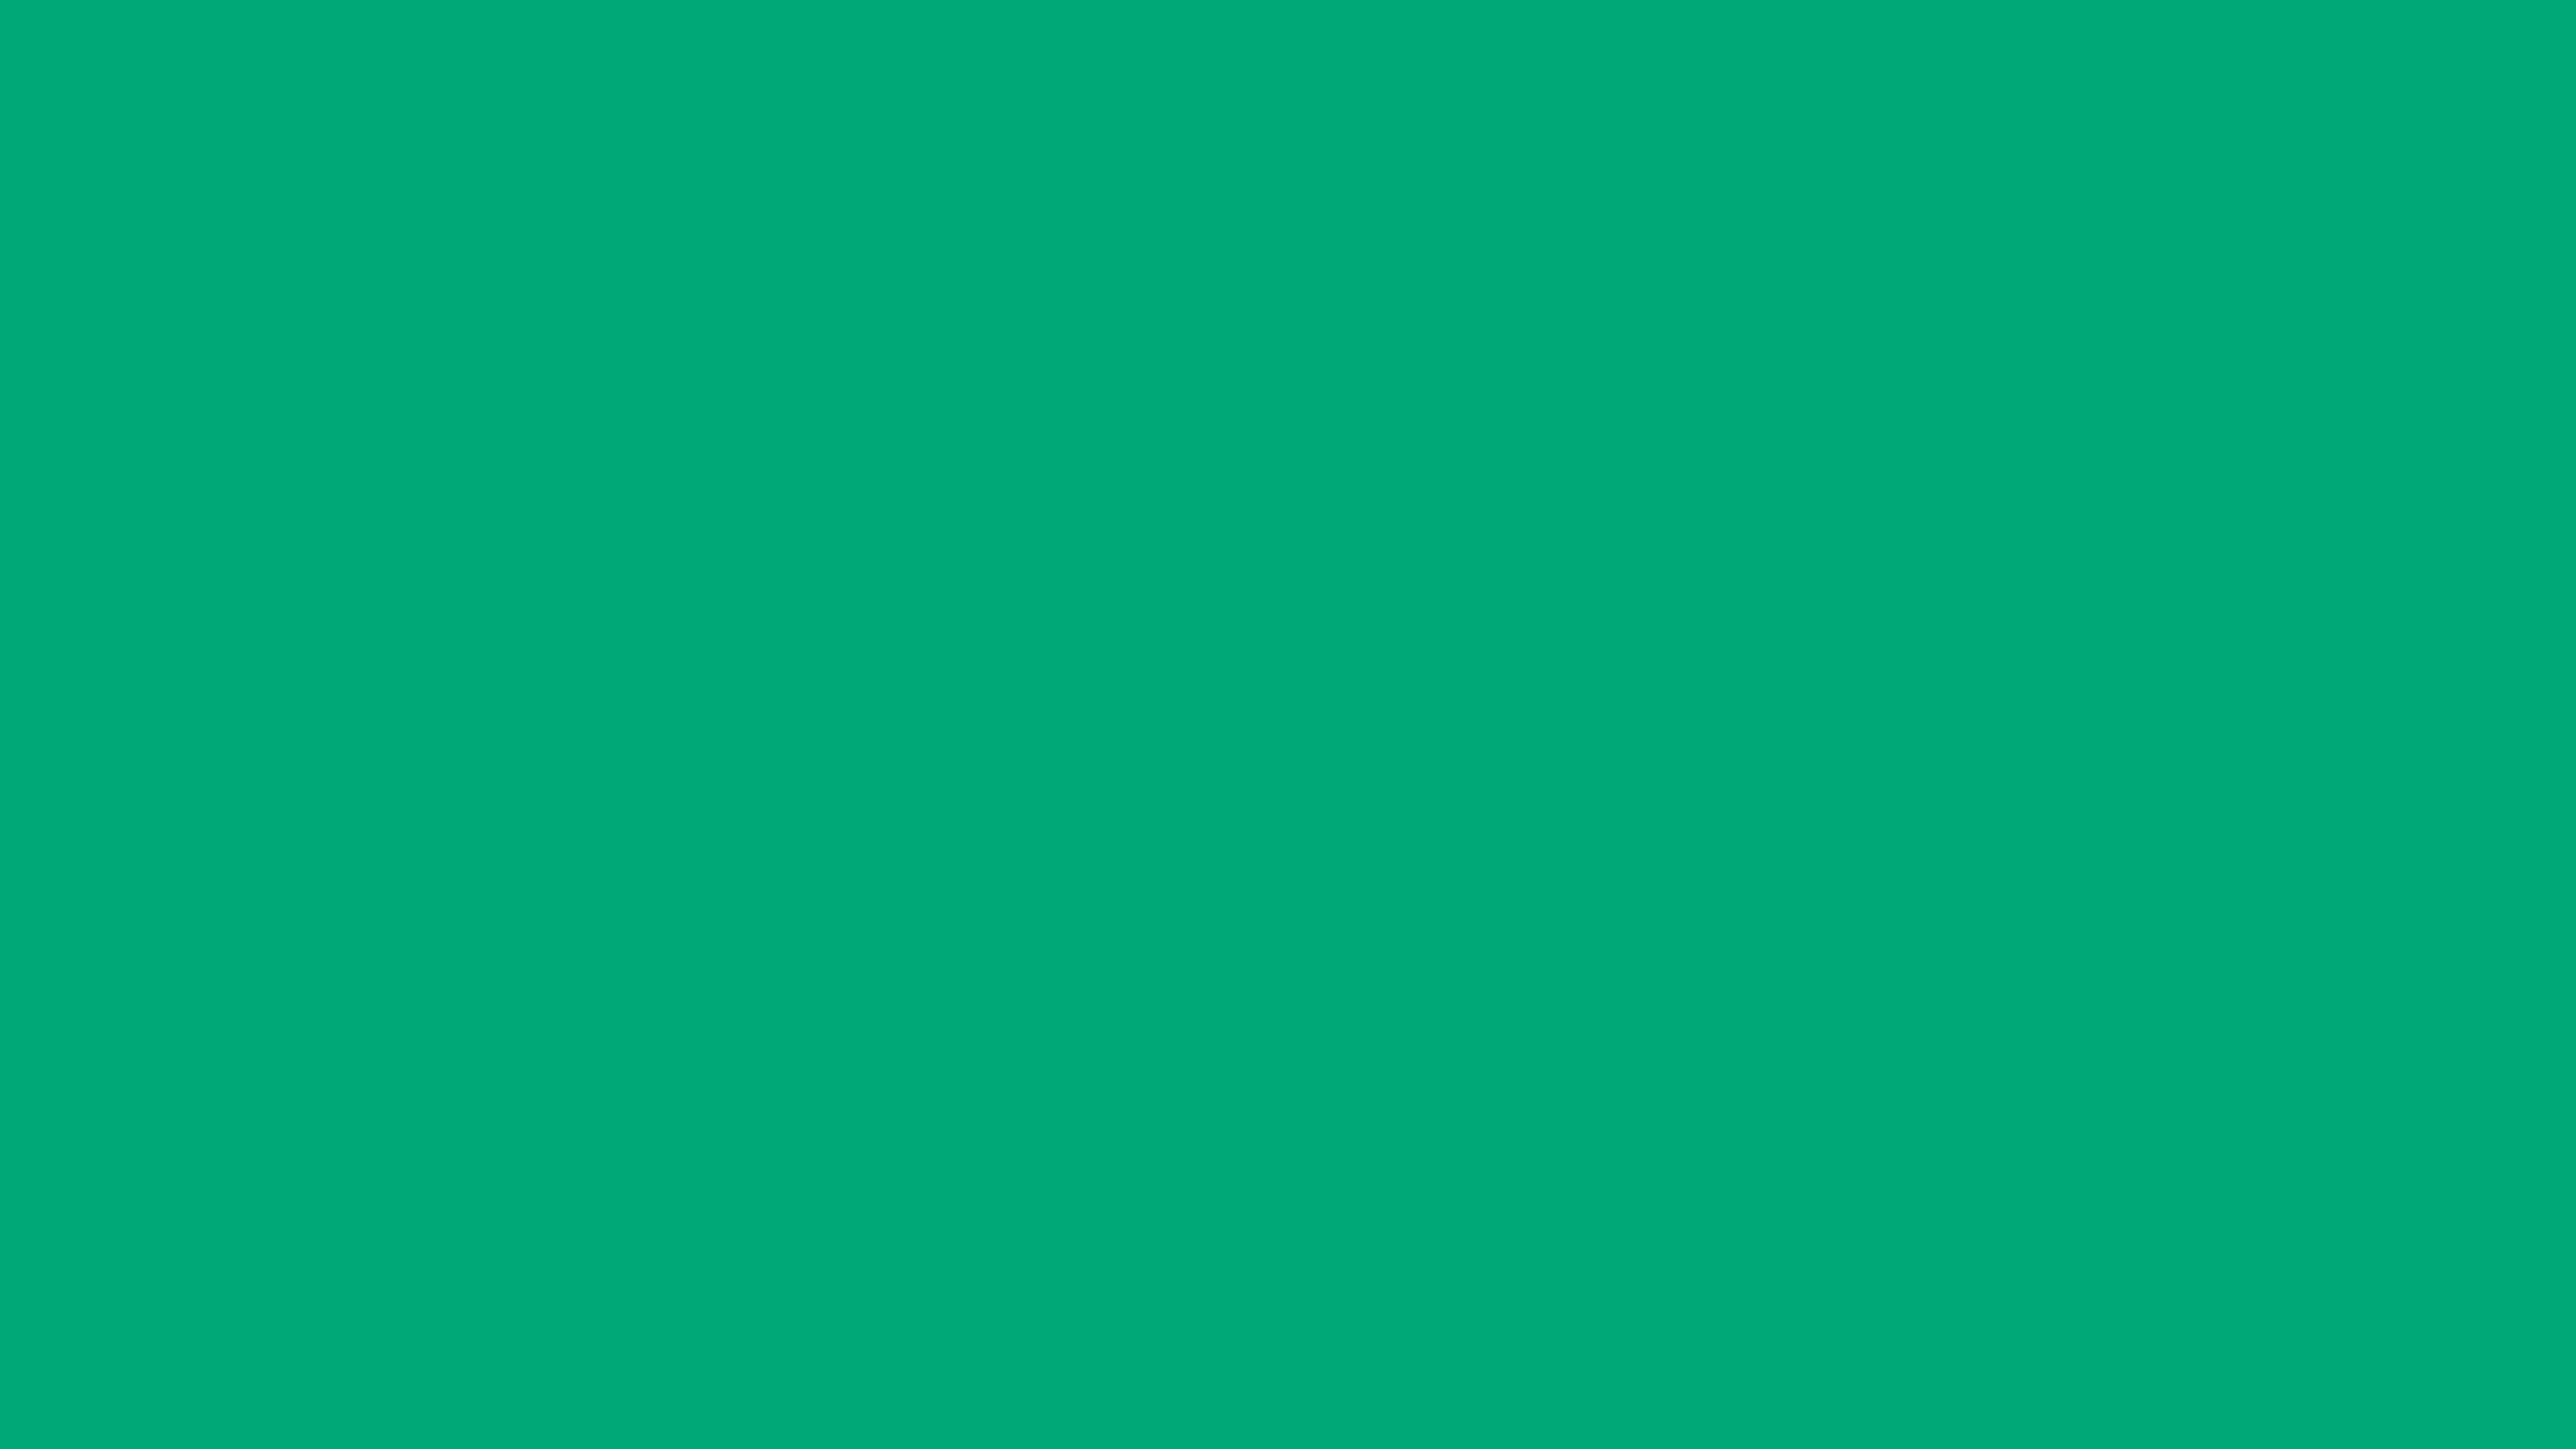 4096x2304 Green Munsell Solid Color Background